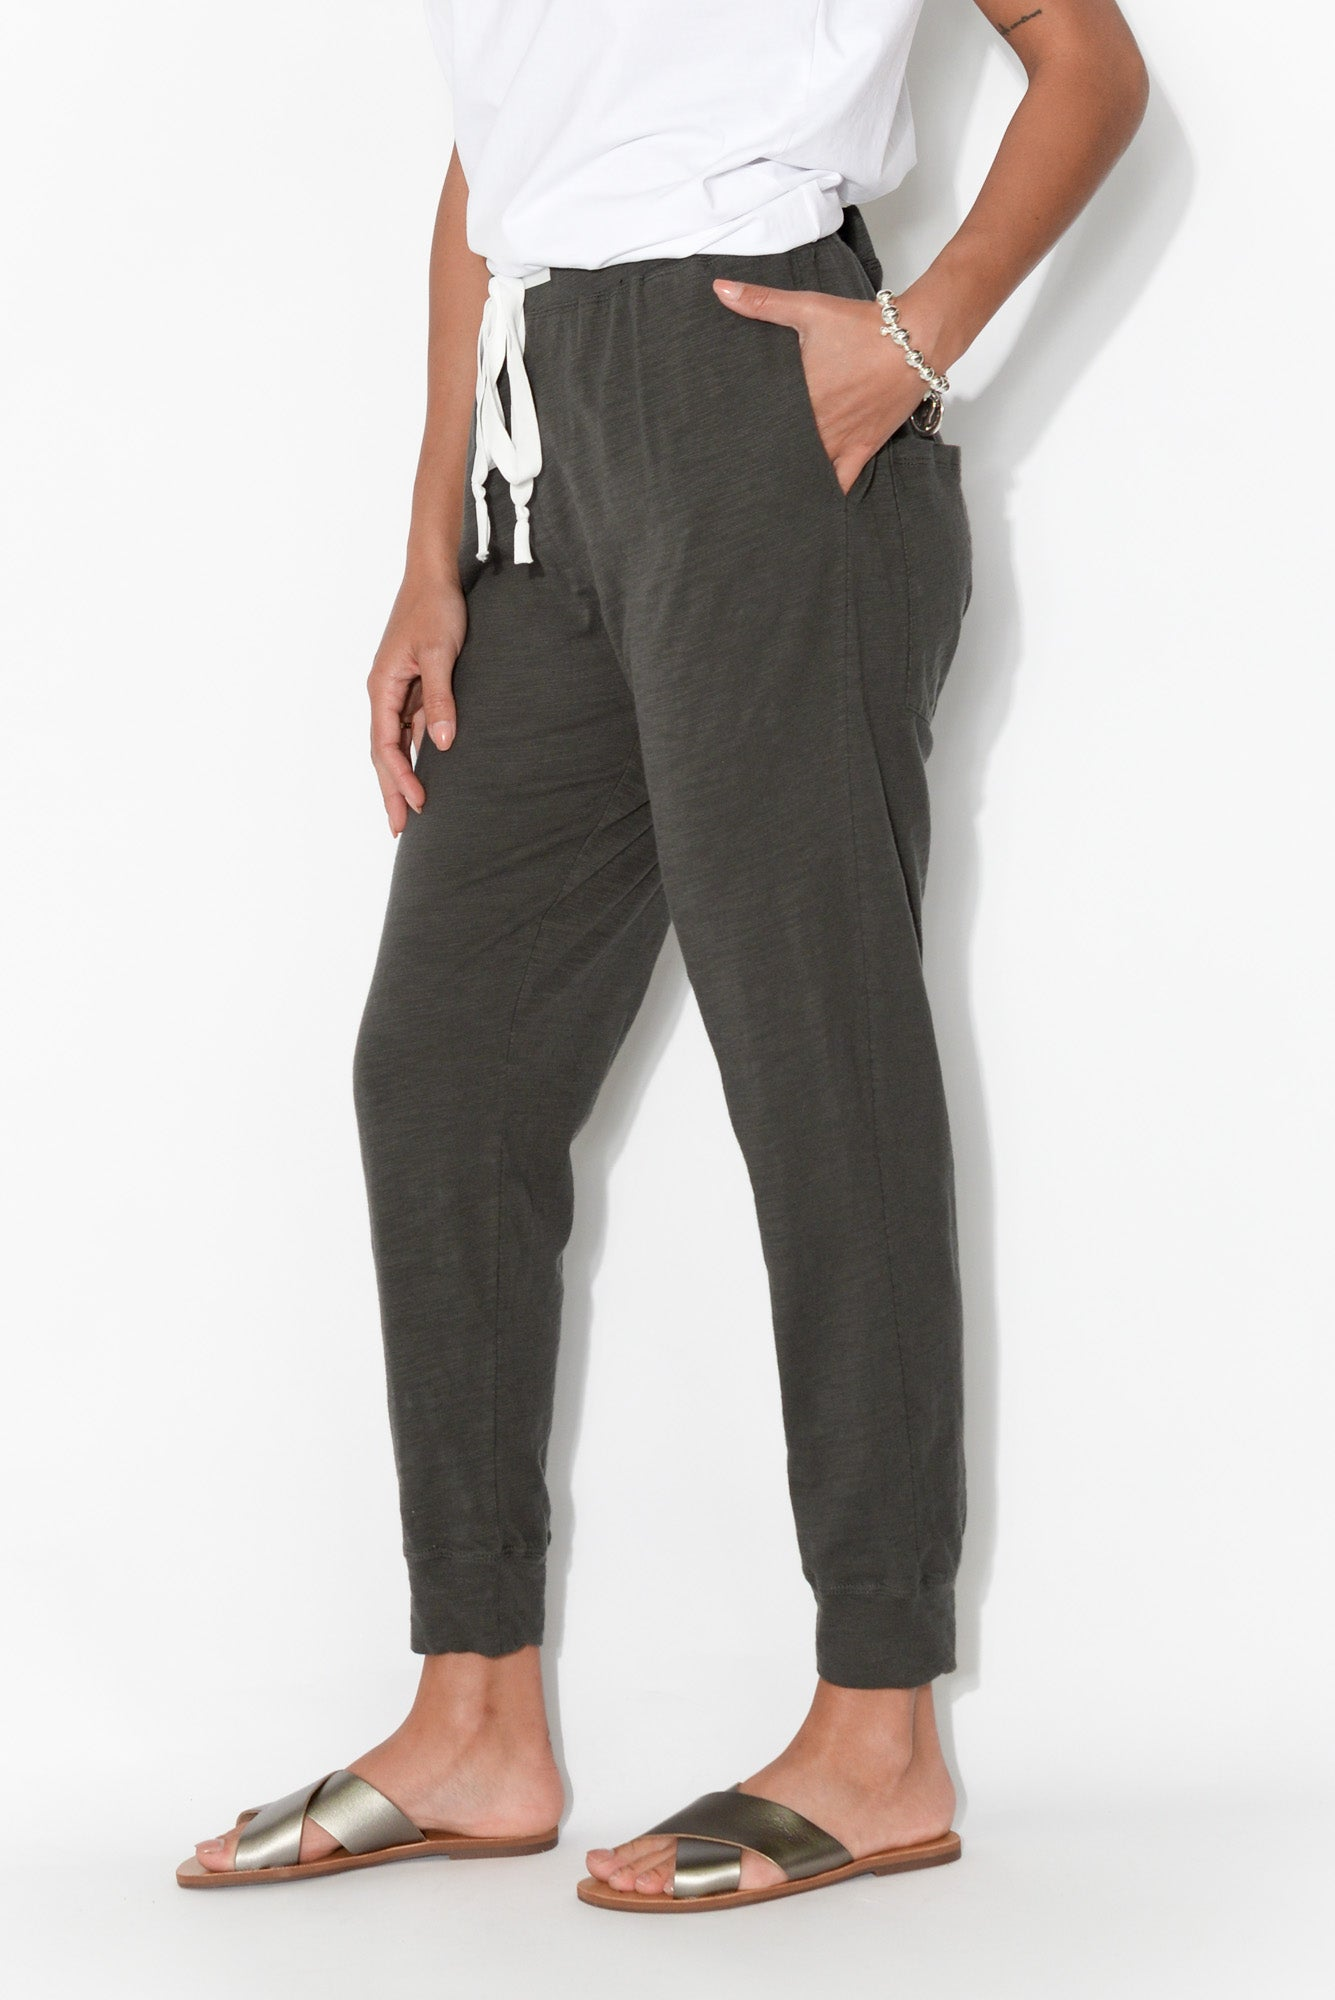 Brooklyn Charcoal Cotton Lounge Pant